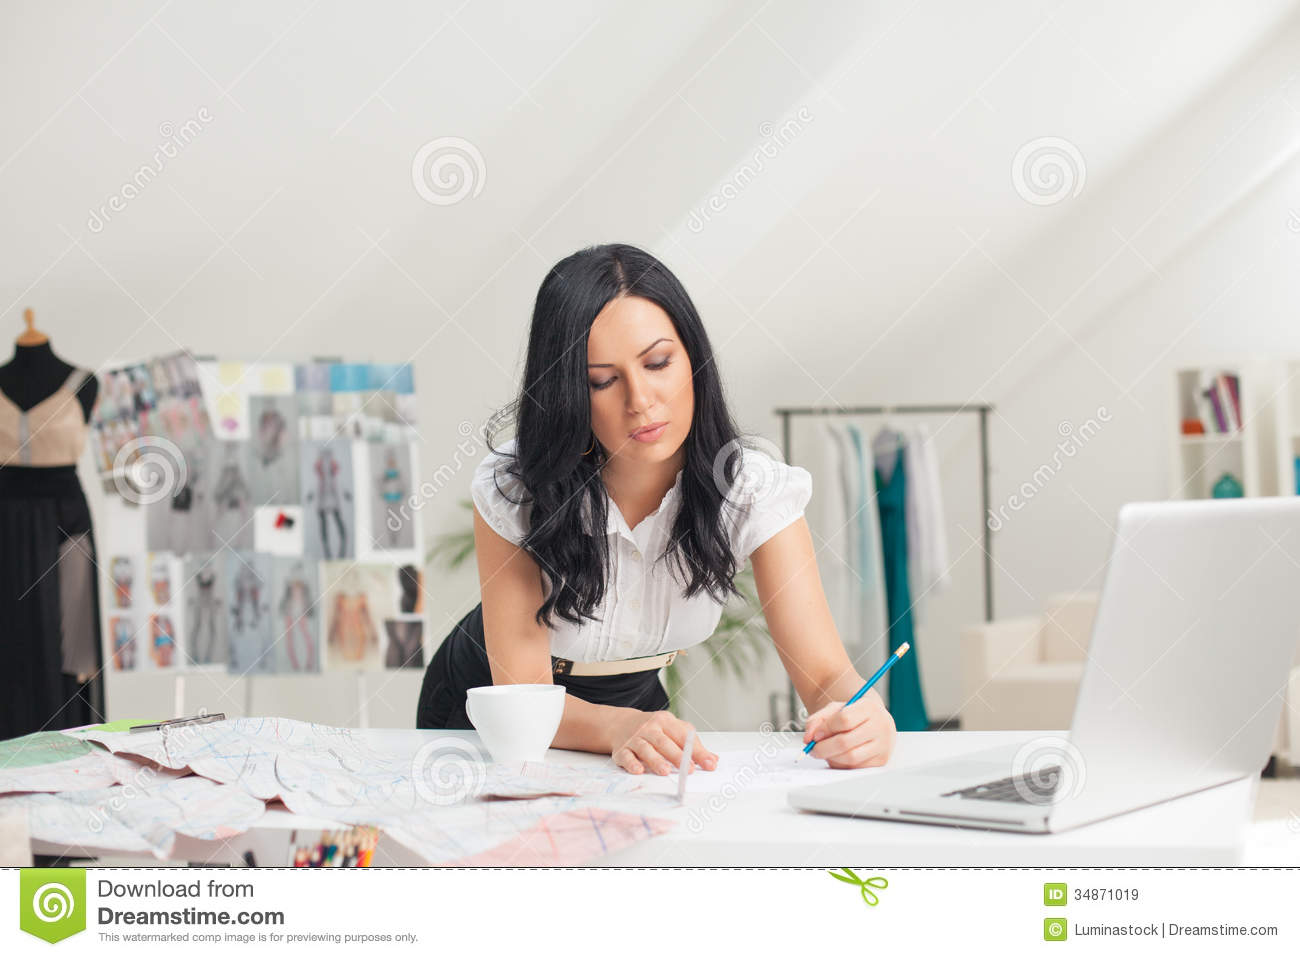 Fashion designer sketching royalty free stock images Contemporary fashion designers